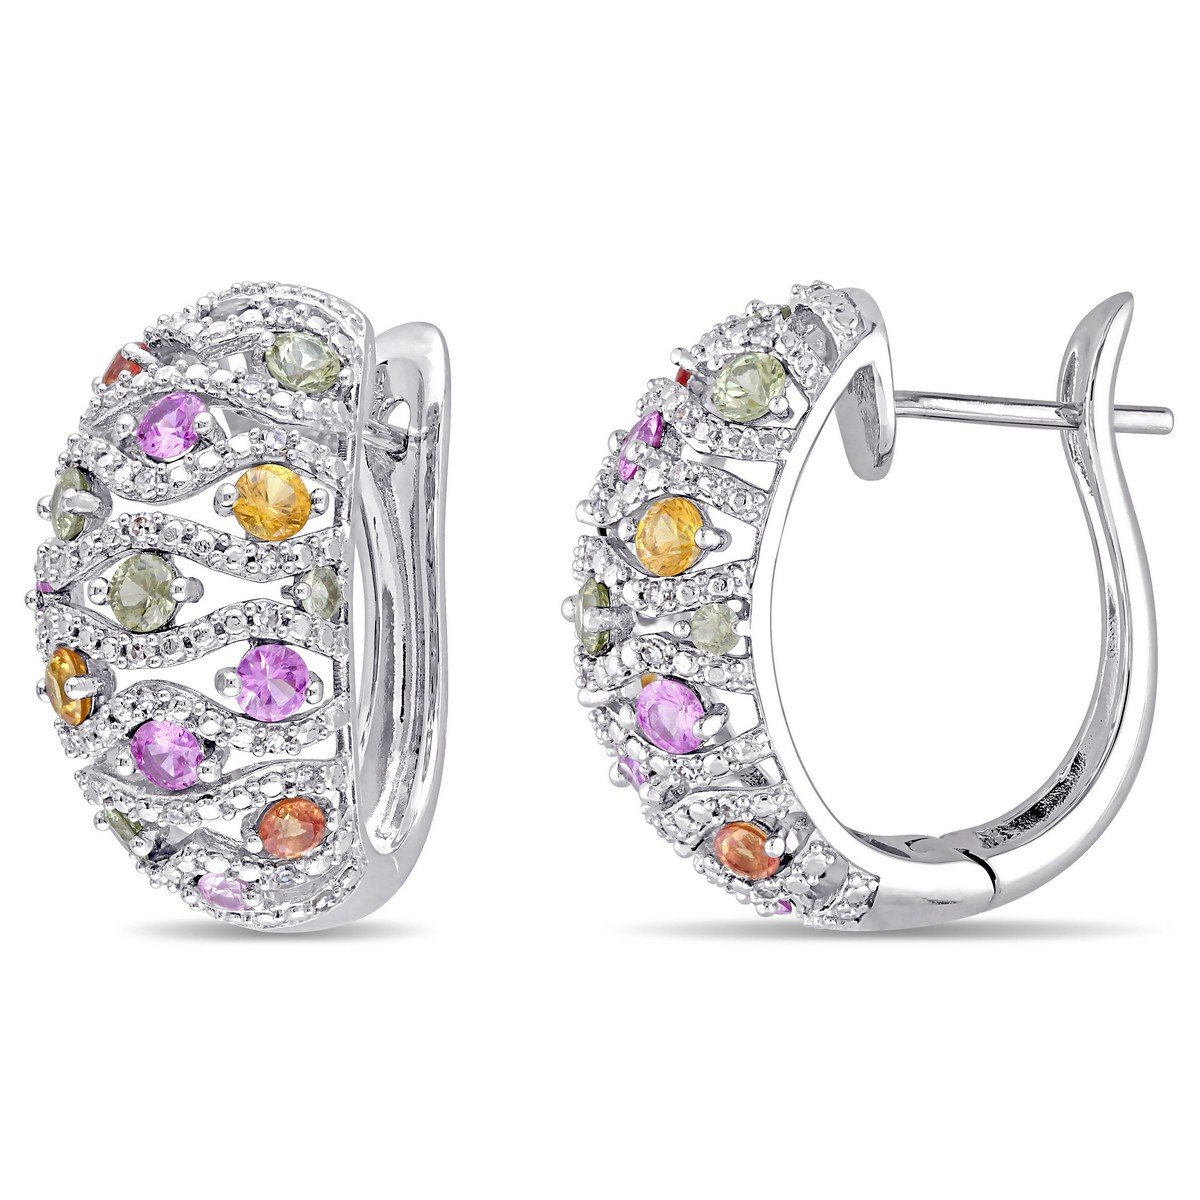 14k White Gold 2 1/3 ct TGW Green Sapphire Yellow Sapphire Pink Sapphire and 1/4 ct Diamond Hoop Earring